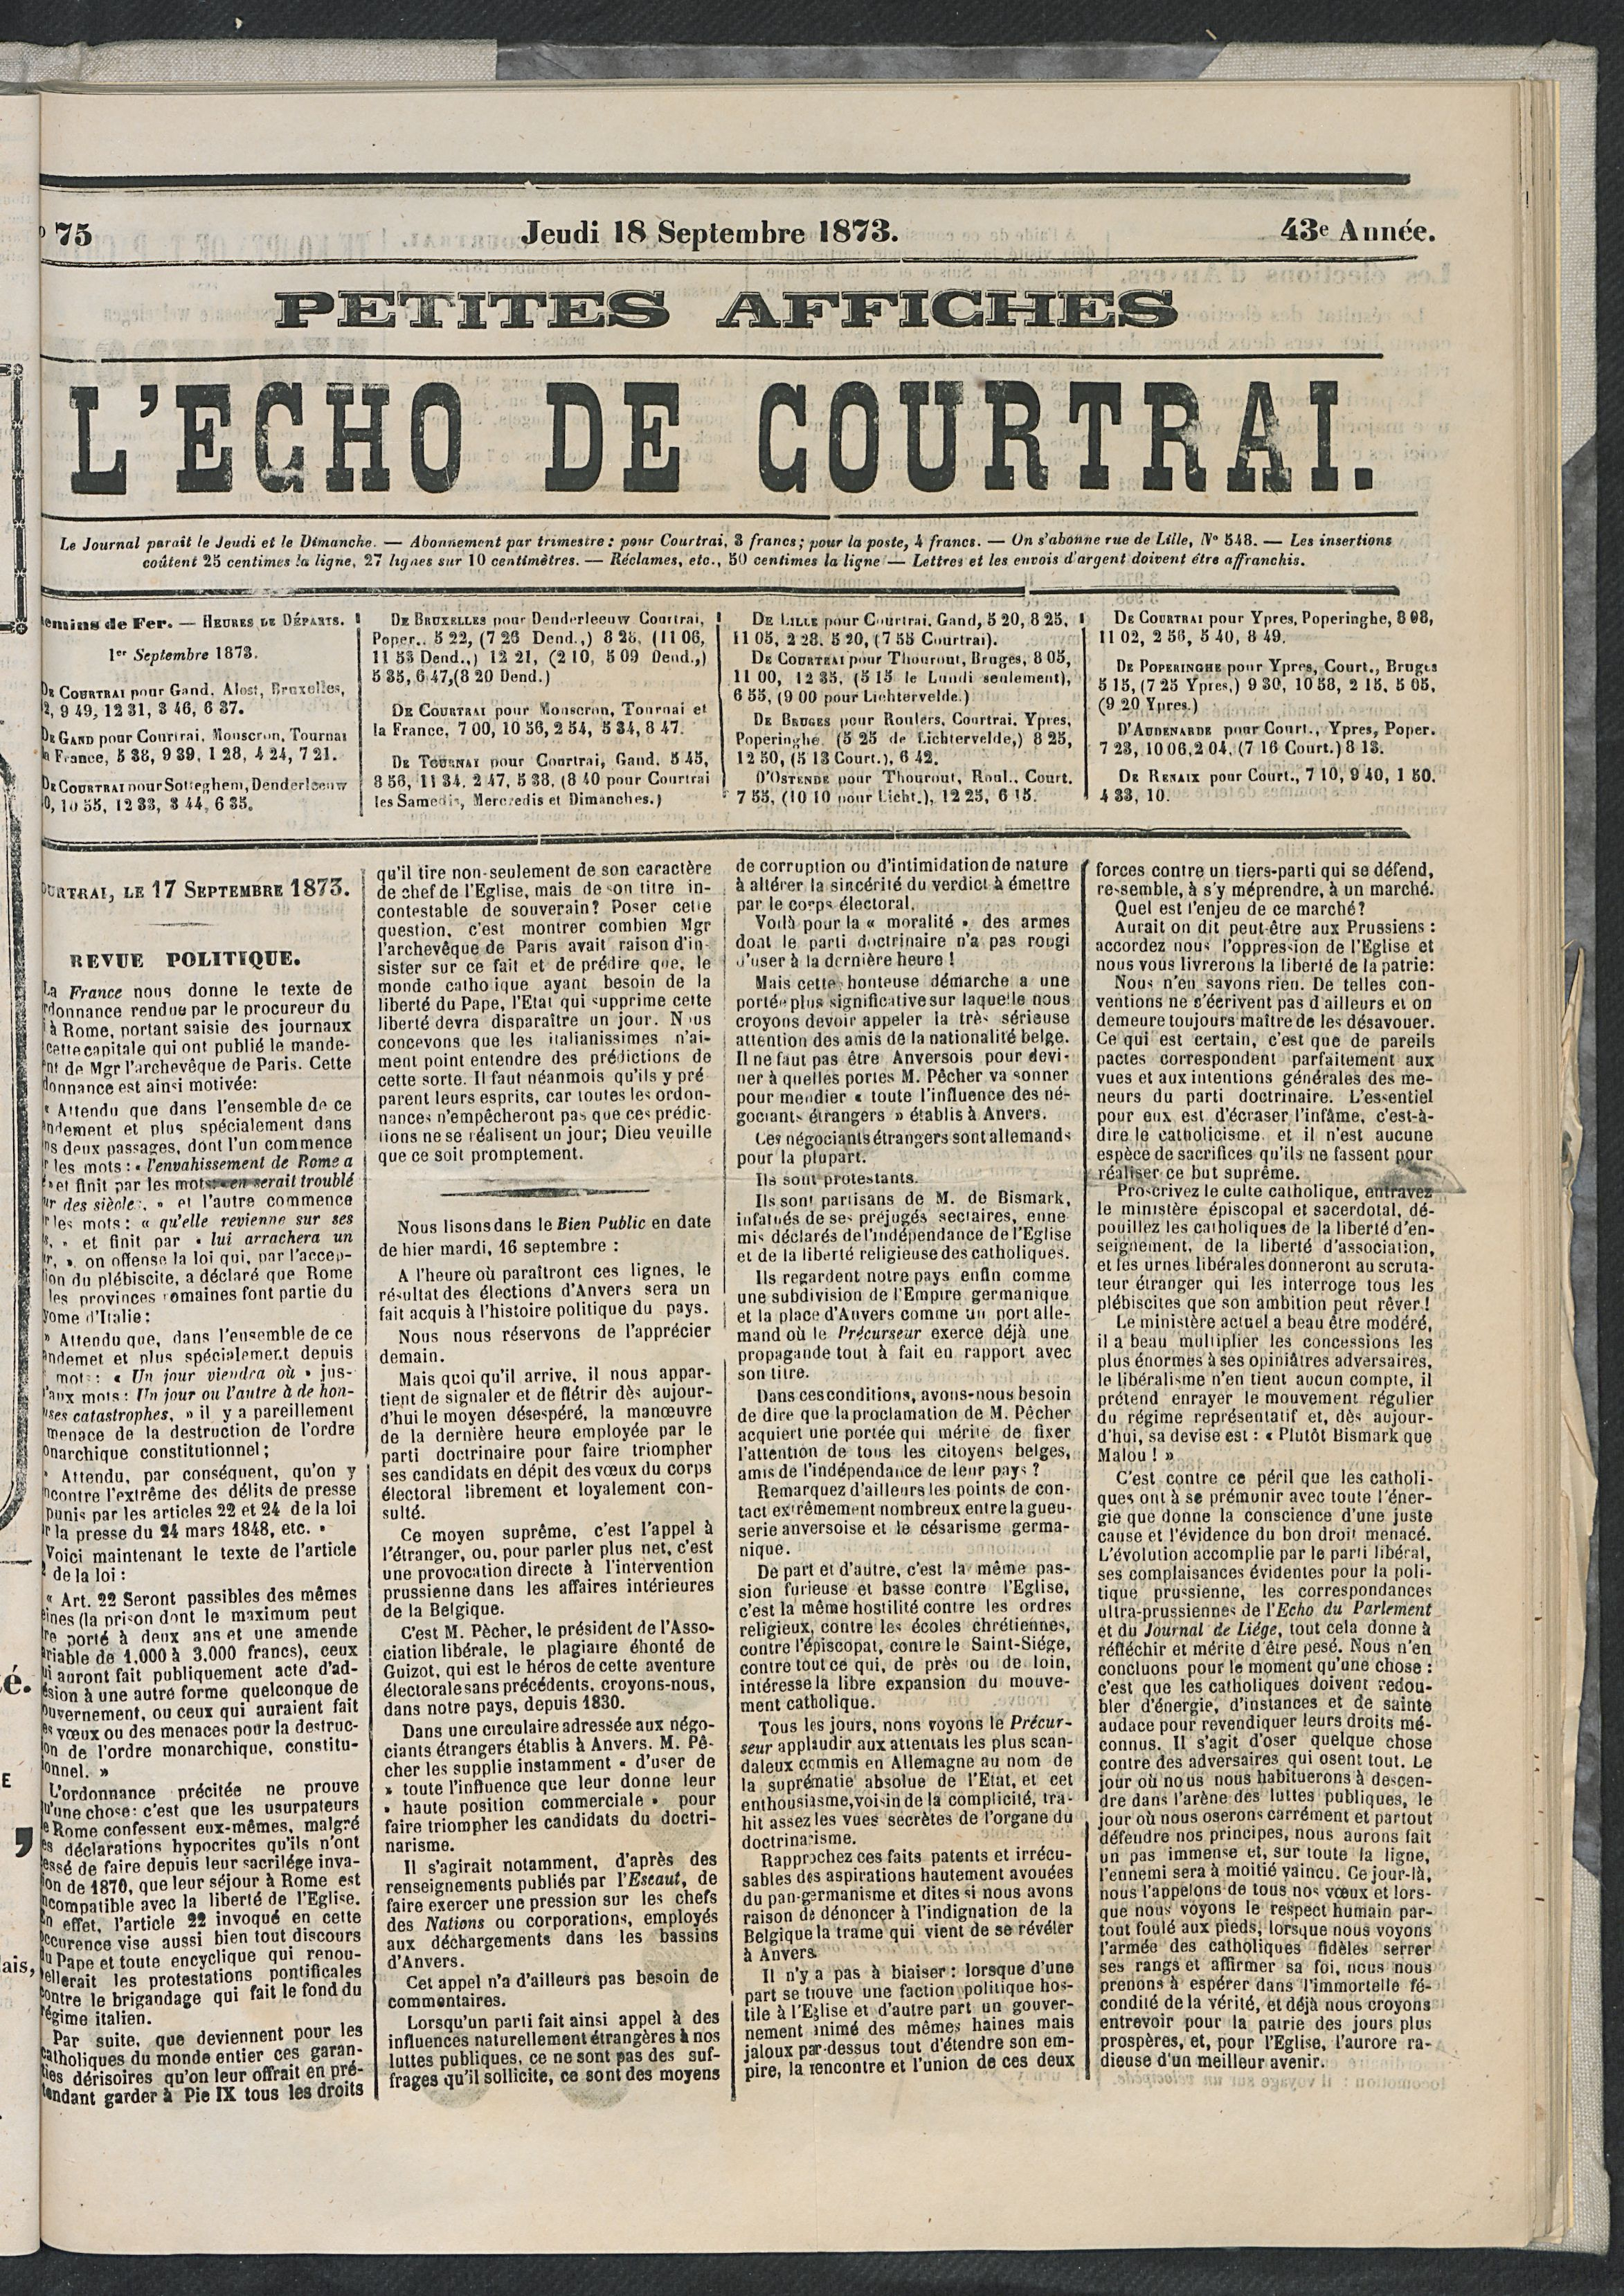 L'echo De Courtrai 1873-09-18 p1